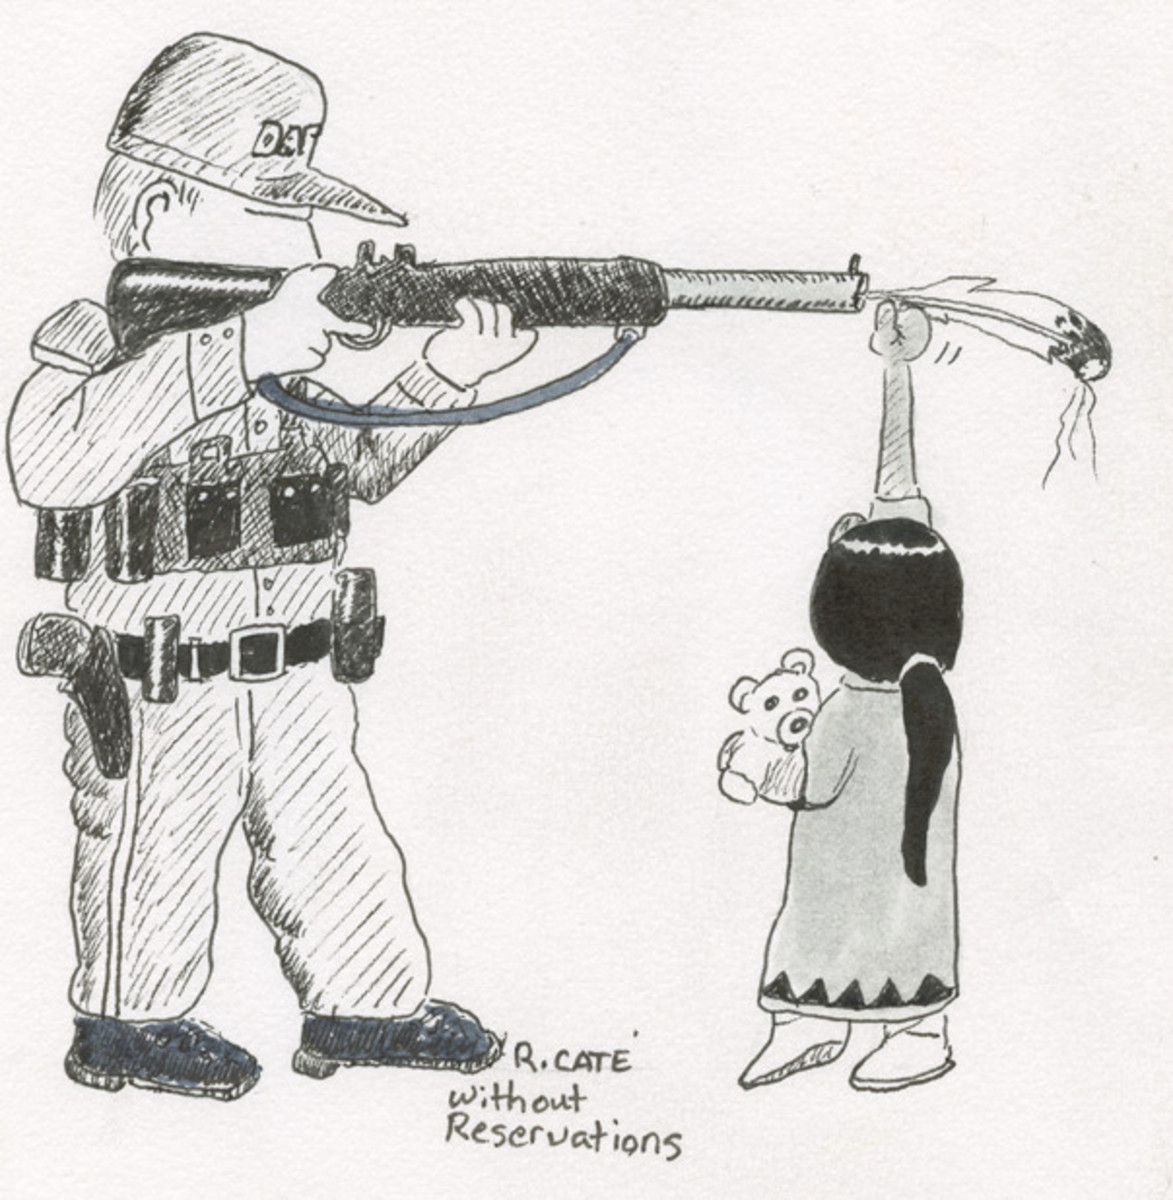 A NoDAPL Drawing by Ricardo Cate'